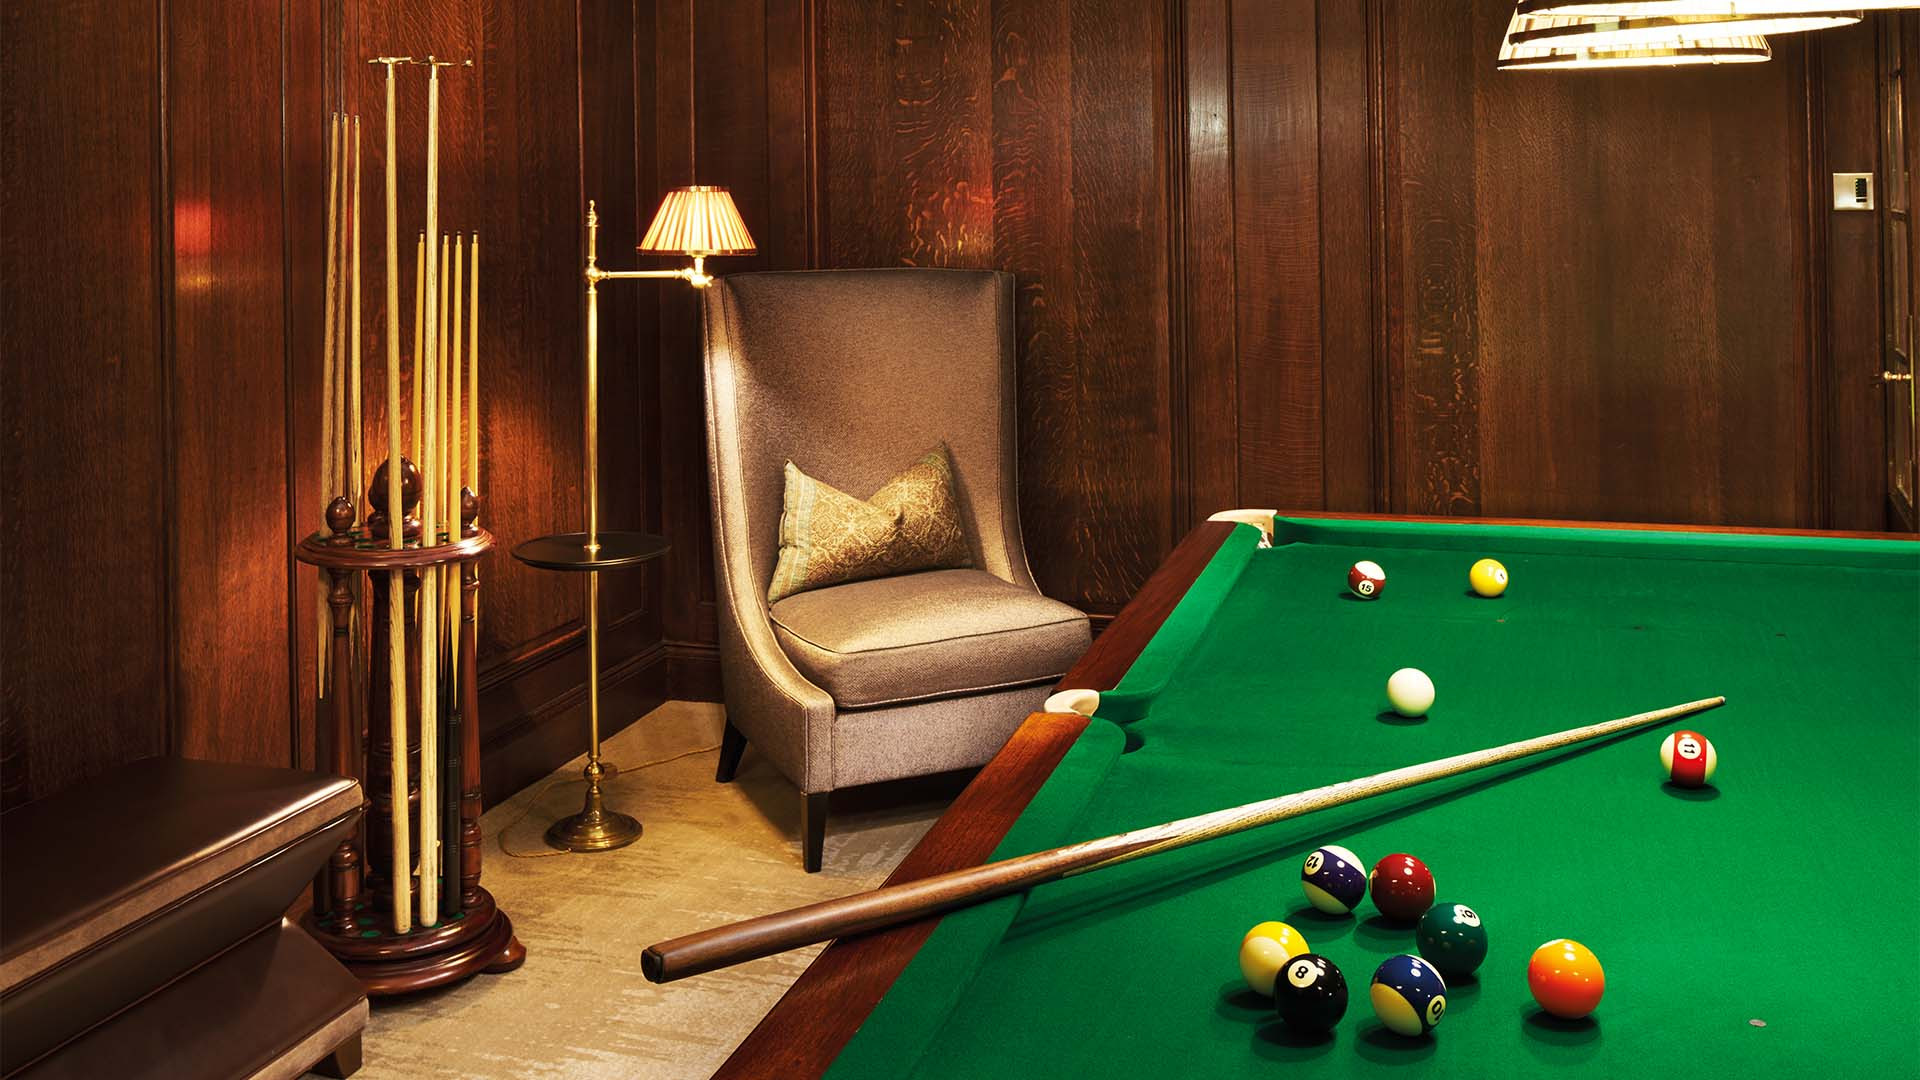 Billiard Room at Ten Trinity Square